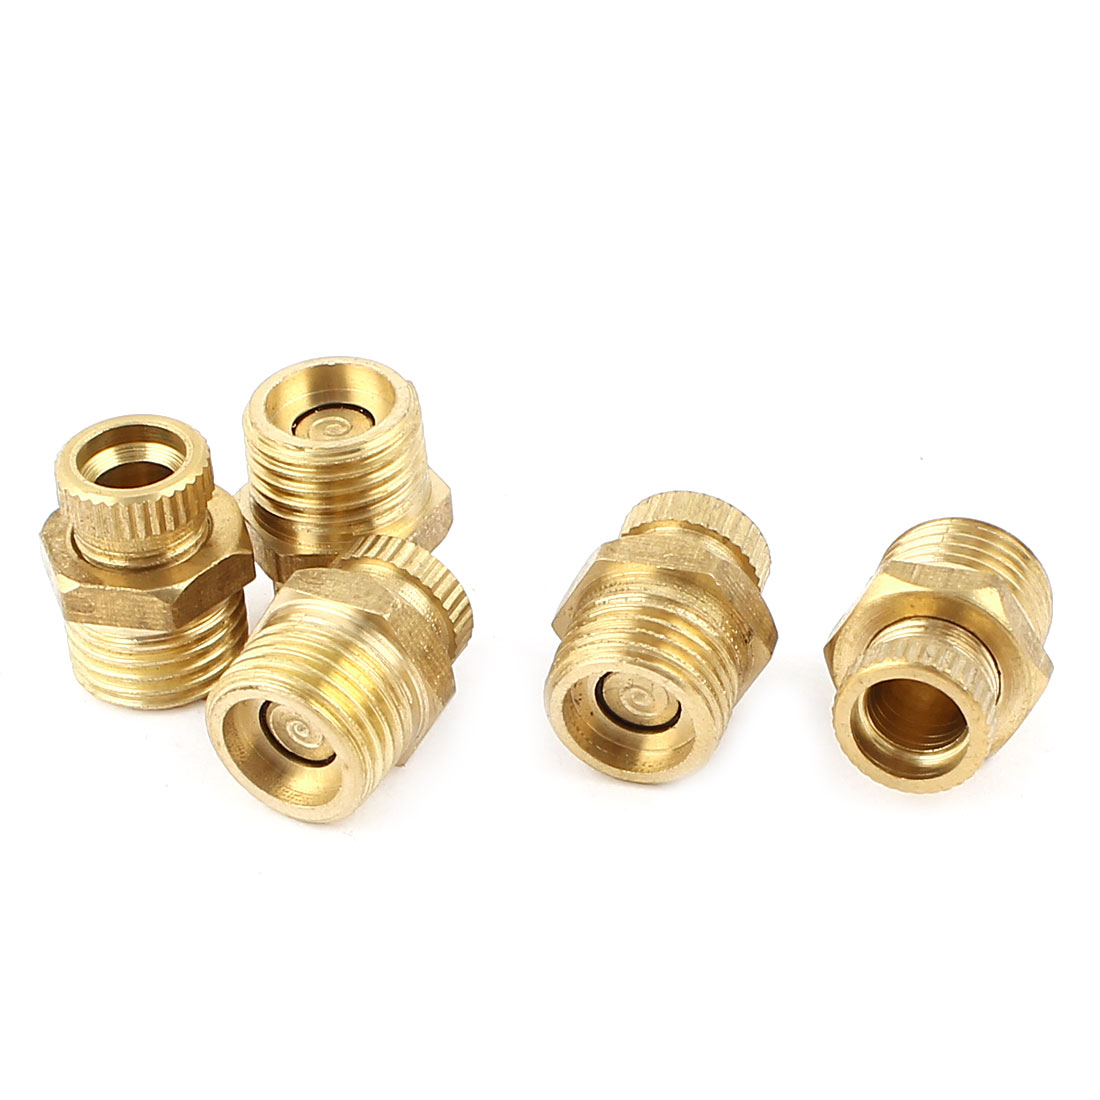 Air Compressor 13mm Male Thread Dia Water Drain Valve Brass Tone 5pcs